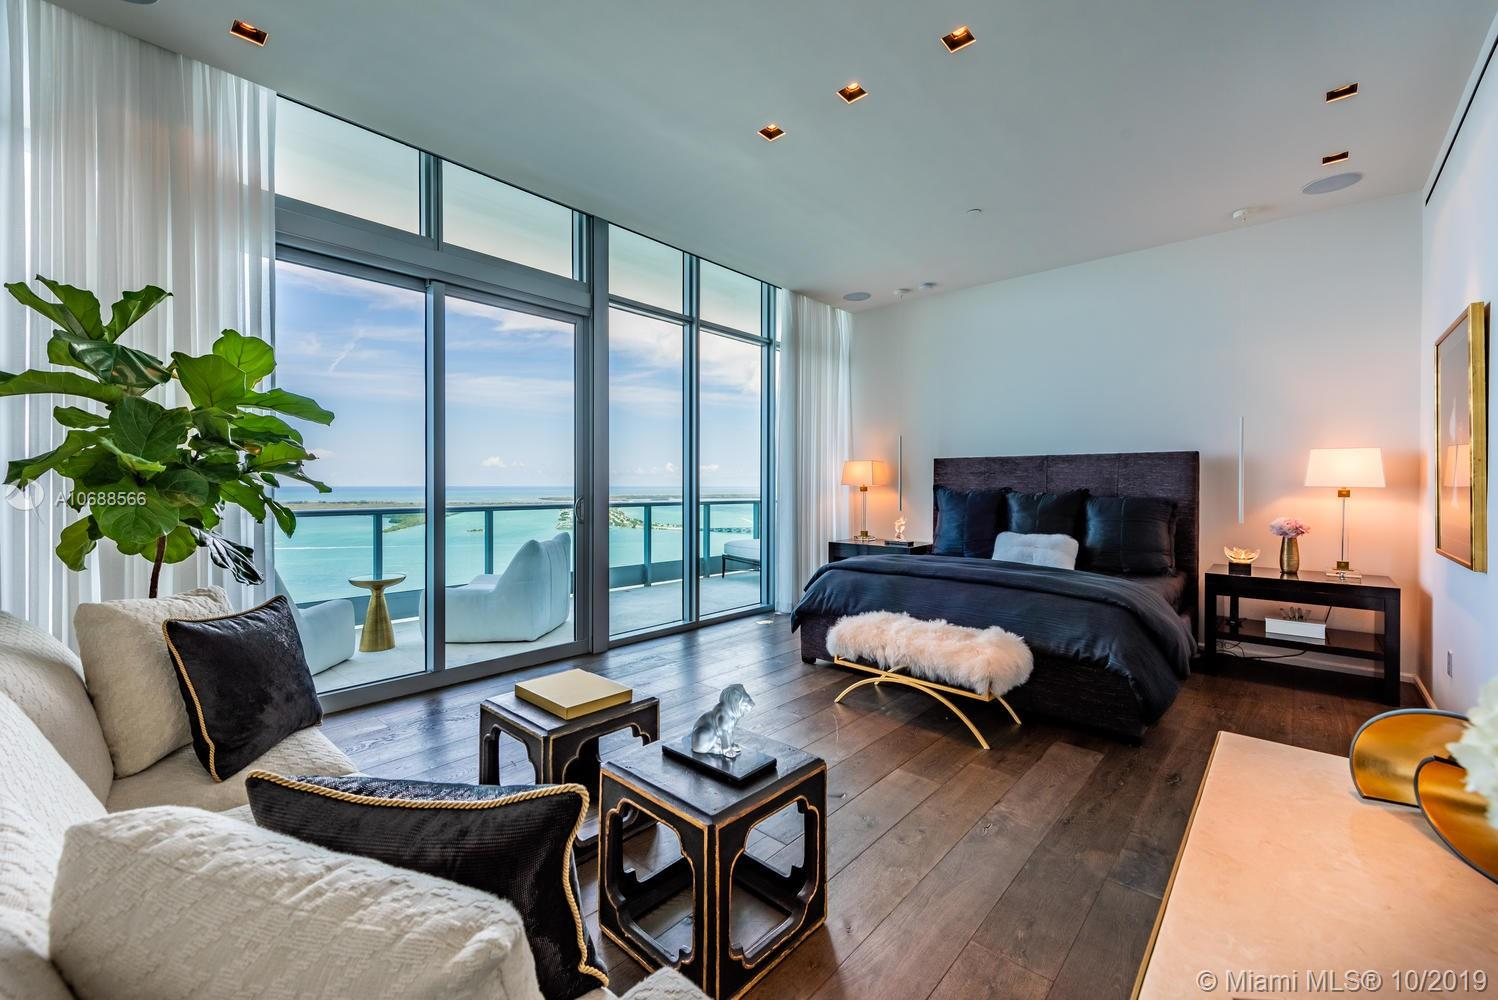 1331 Brickell bay dr-PH4707 miami-fl-33131-a10688566-Pic26